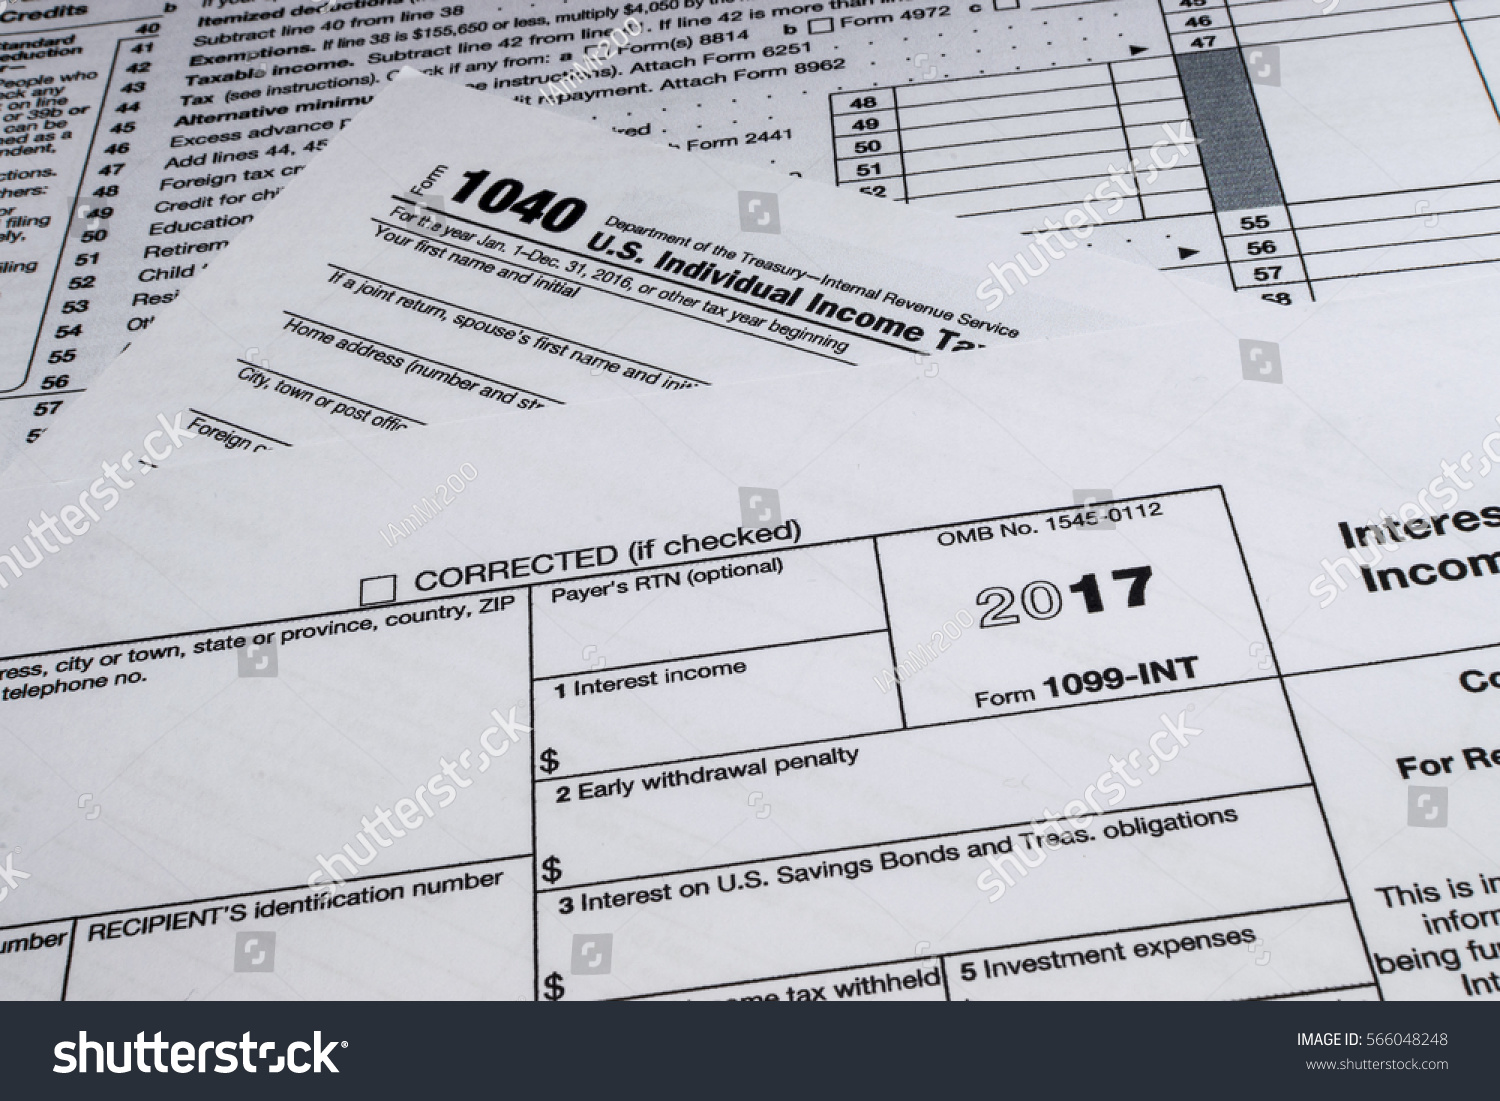 Shot Irs Form 1099int Interest Income Stock Photo 566048248 ...